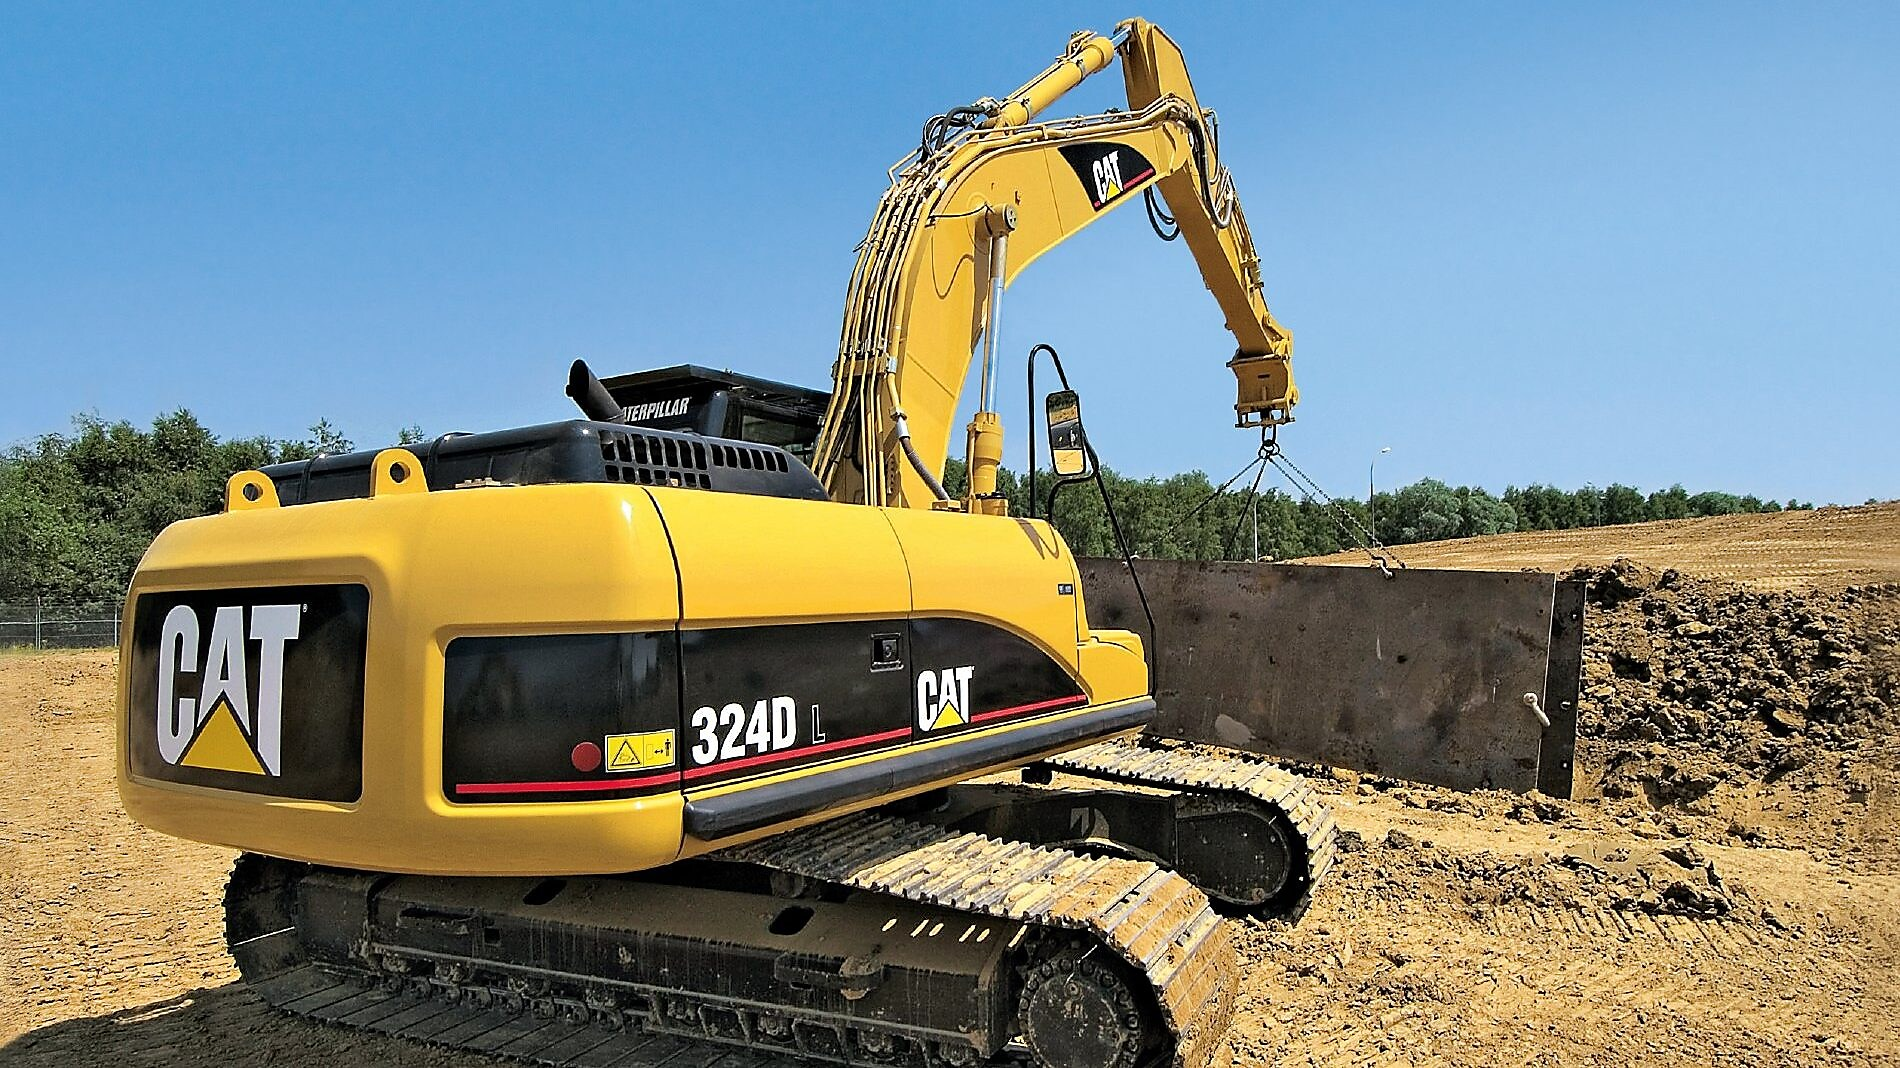 Caterpillar-320D-Low-Power-with-Engine-Black-Smoke-Repair